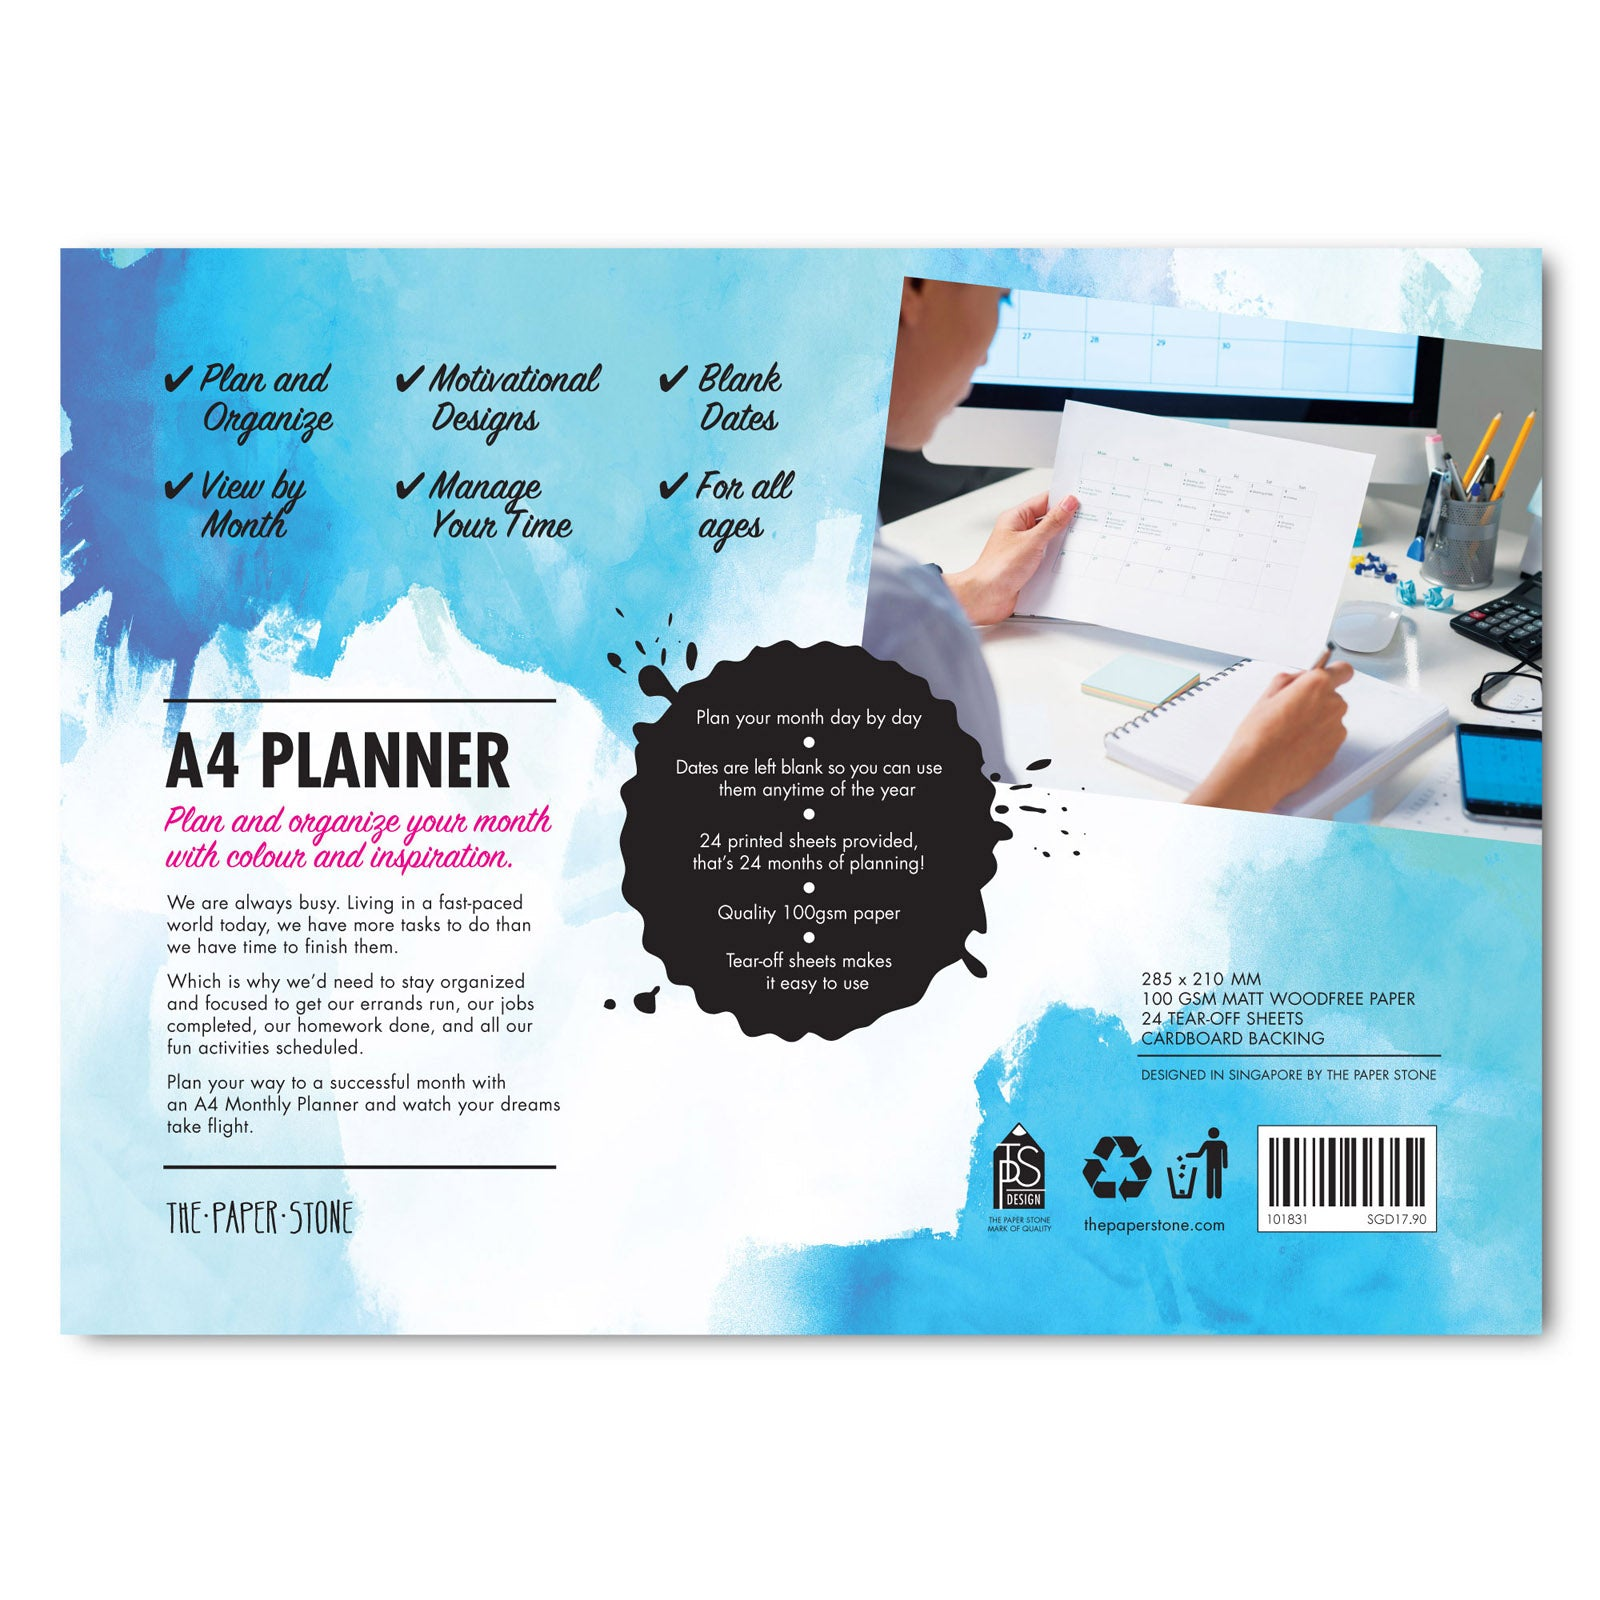 A4 Planner - Schedules And Plans